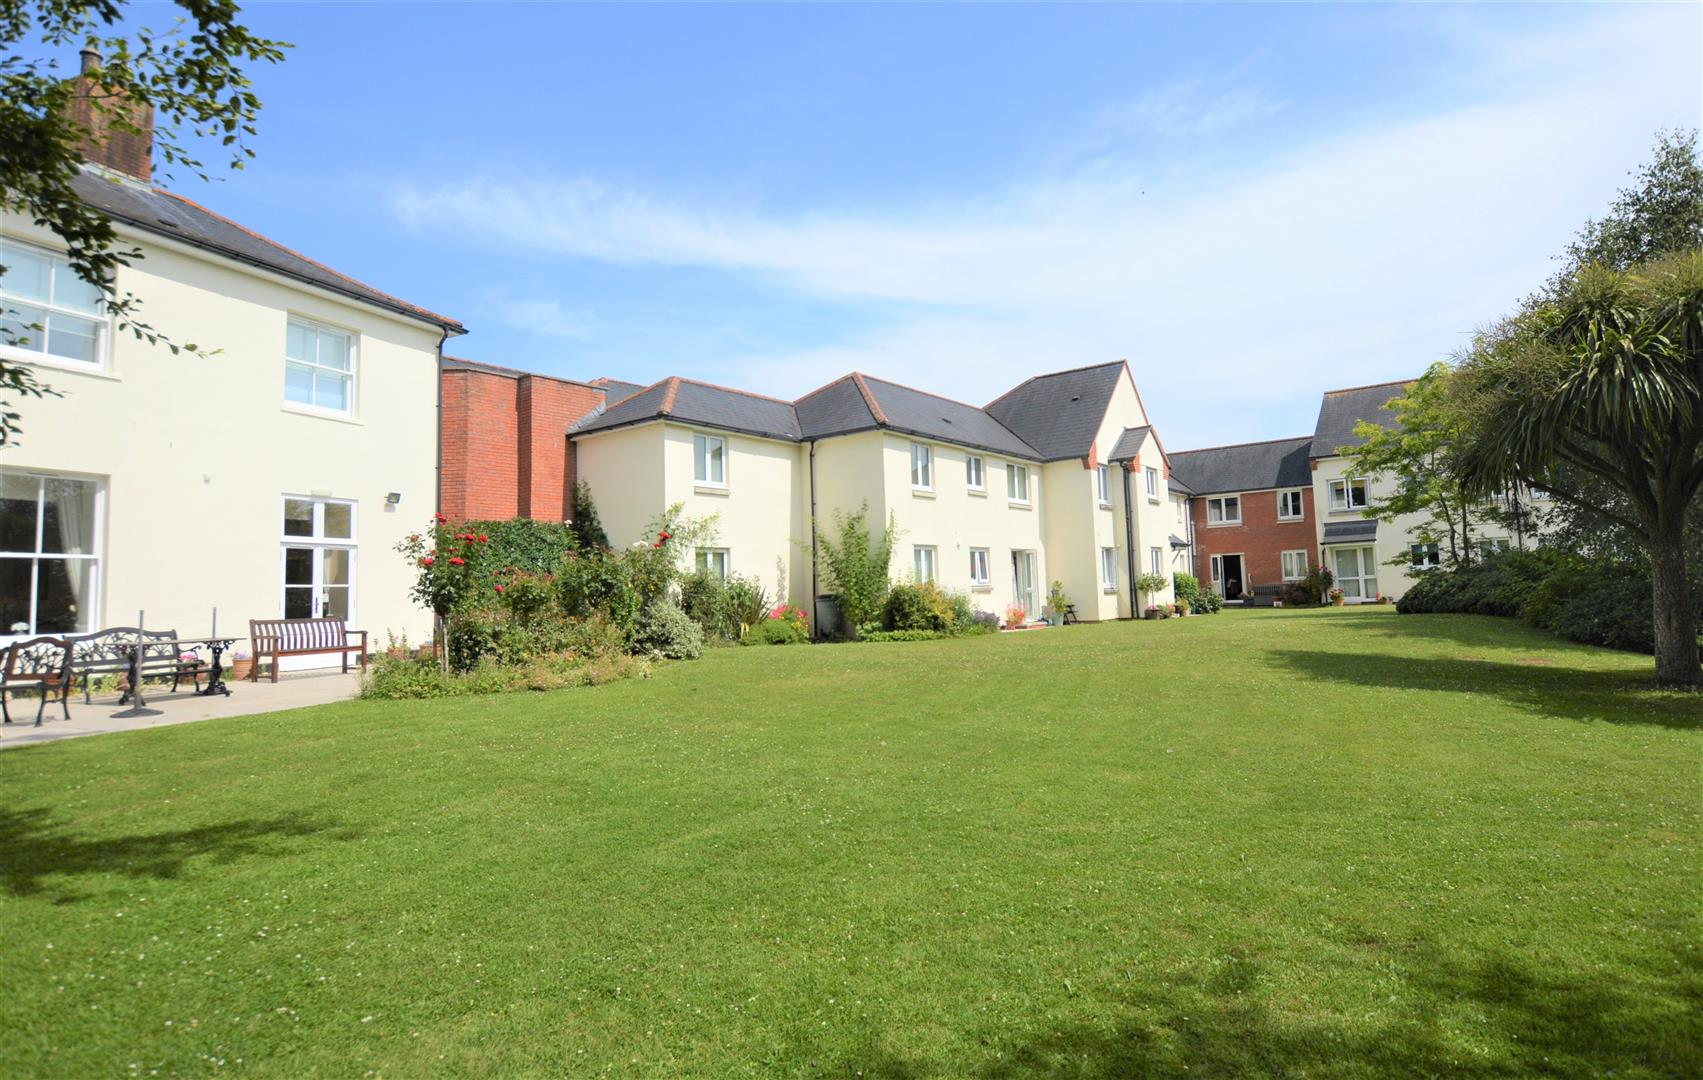 Mowbray Court, Butts Road, Heavitree, Exeter